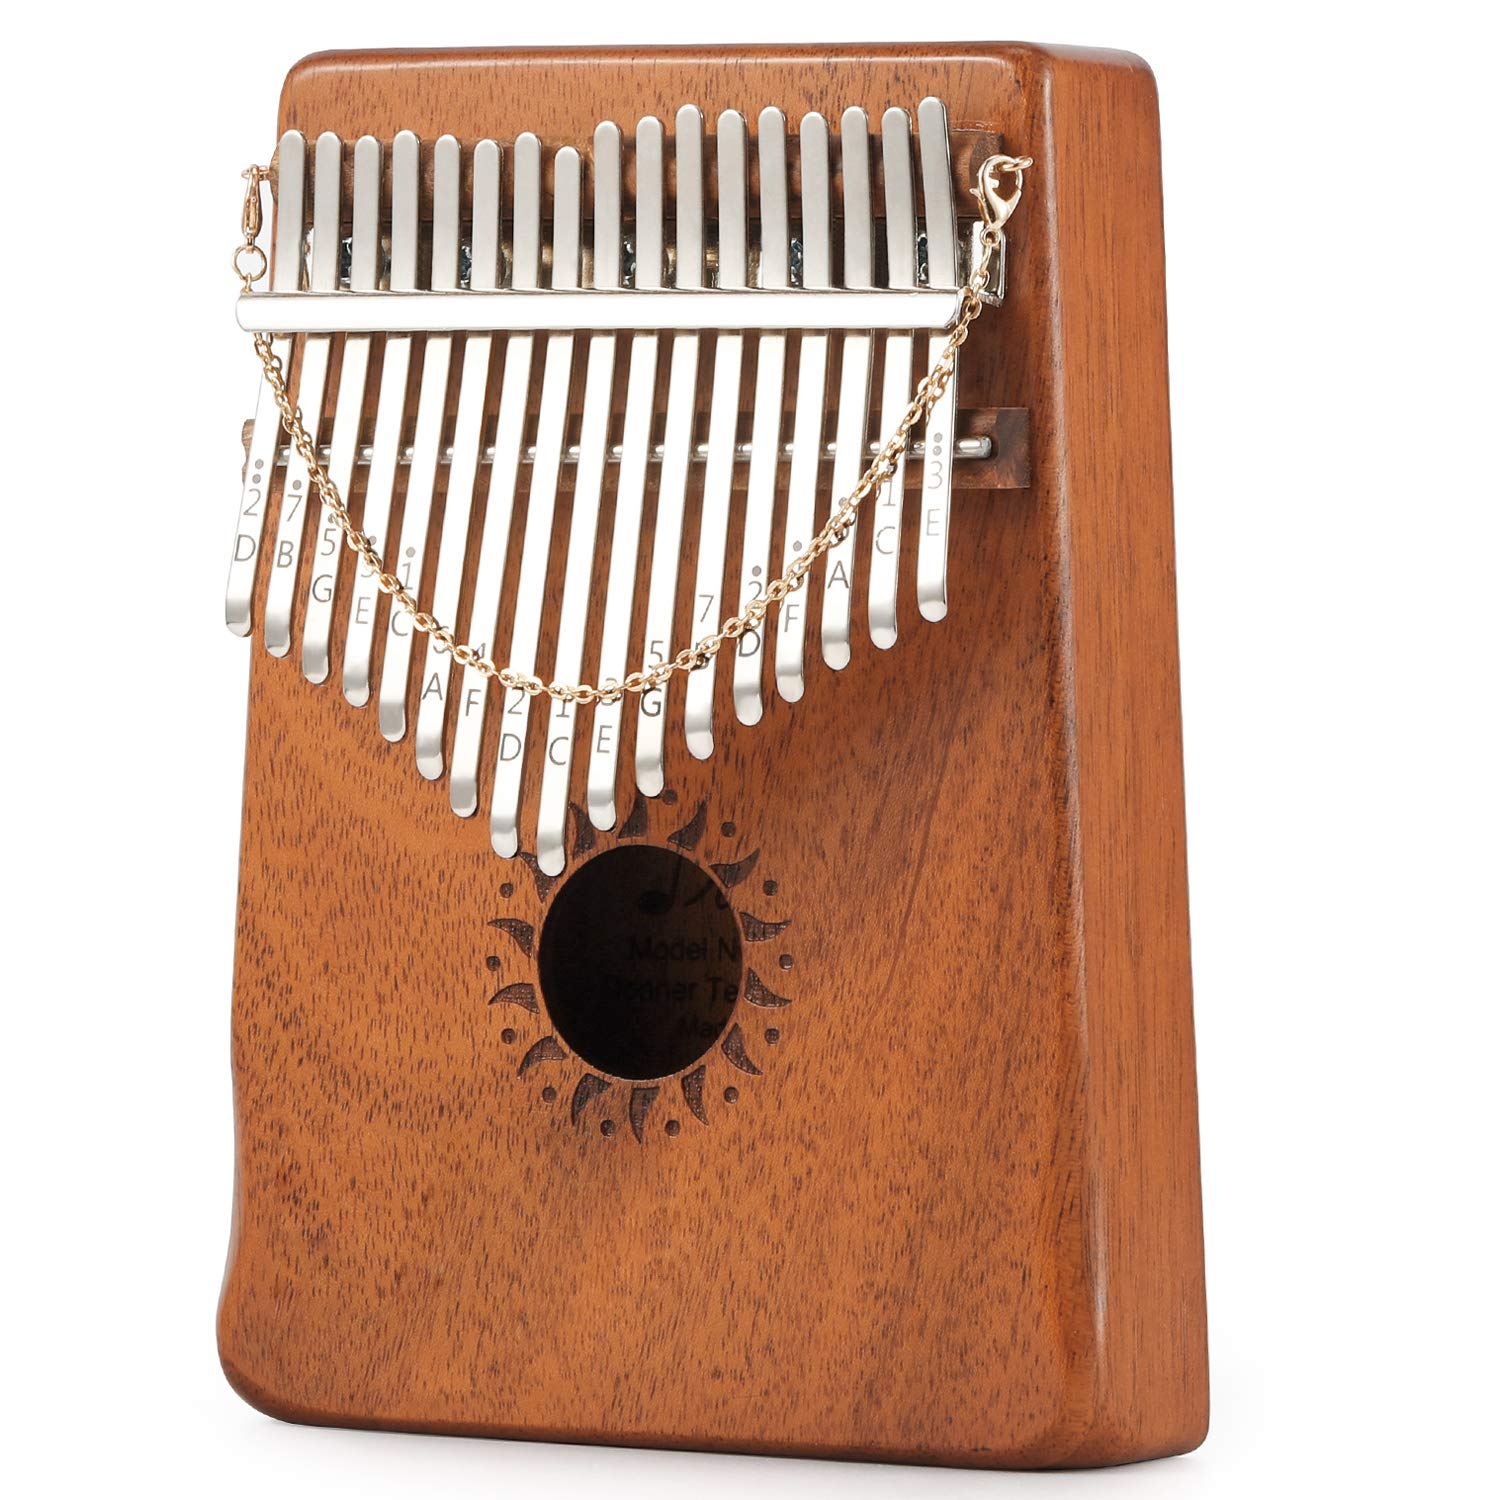 Donner 17 Key Kalimba Thumb Piano Solid Finger Piano Mahogany Body DKL-17 With Hard Case by Donner (Image #3)